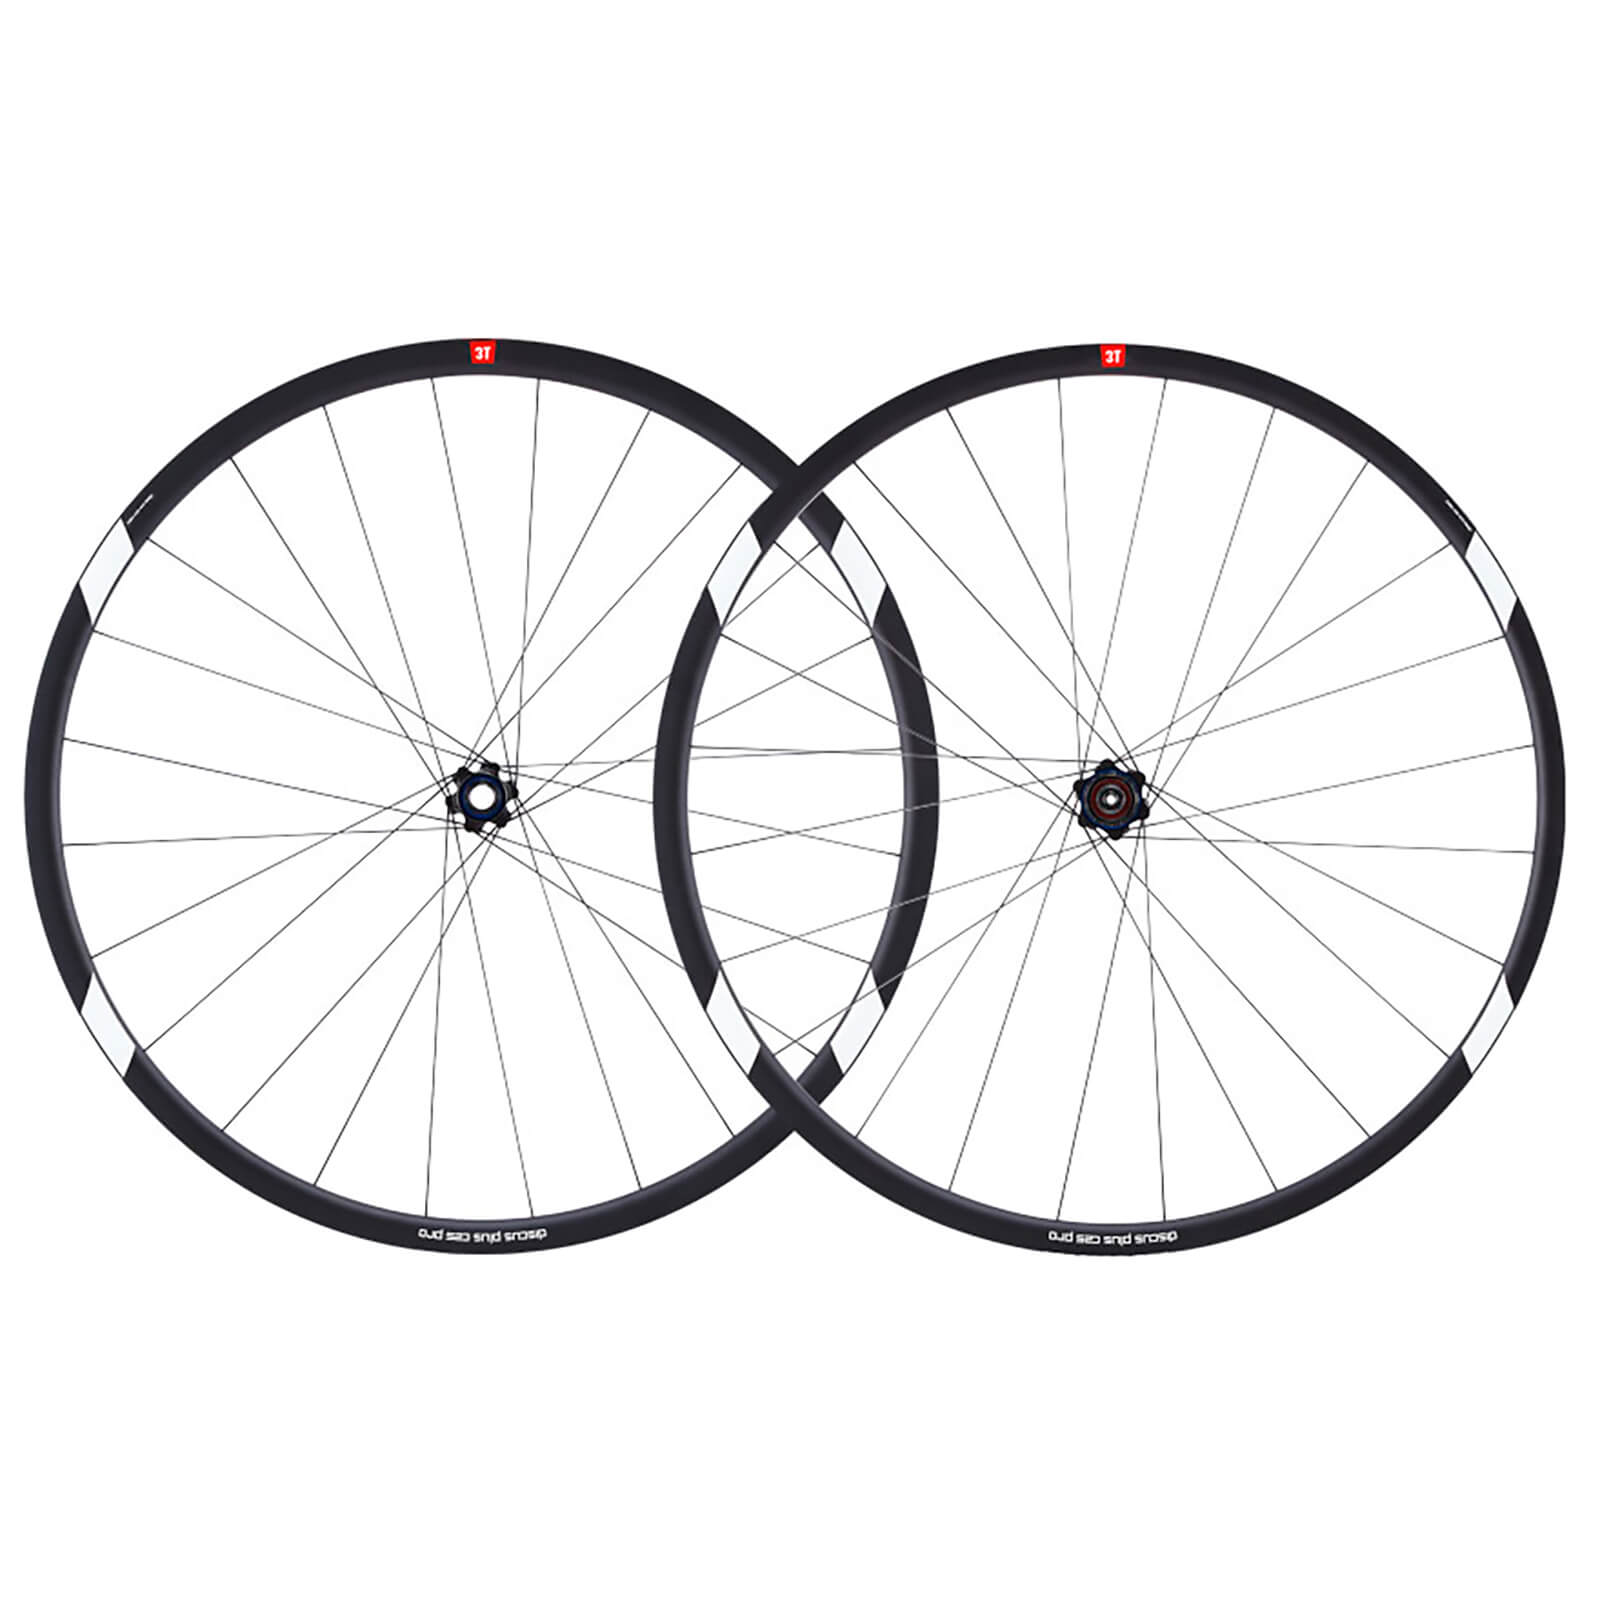 3T Discus Plus C25 Pro Set with WTB Tyres - 25mm - Black